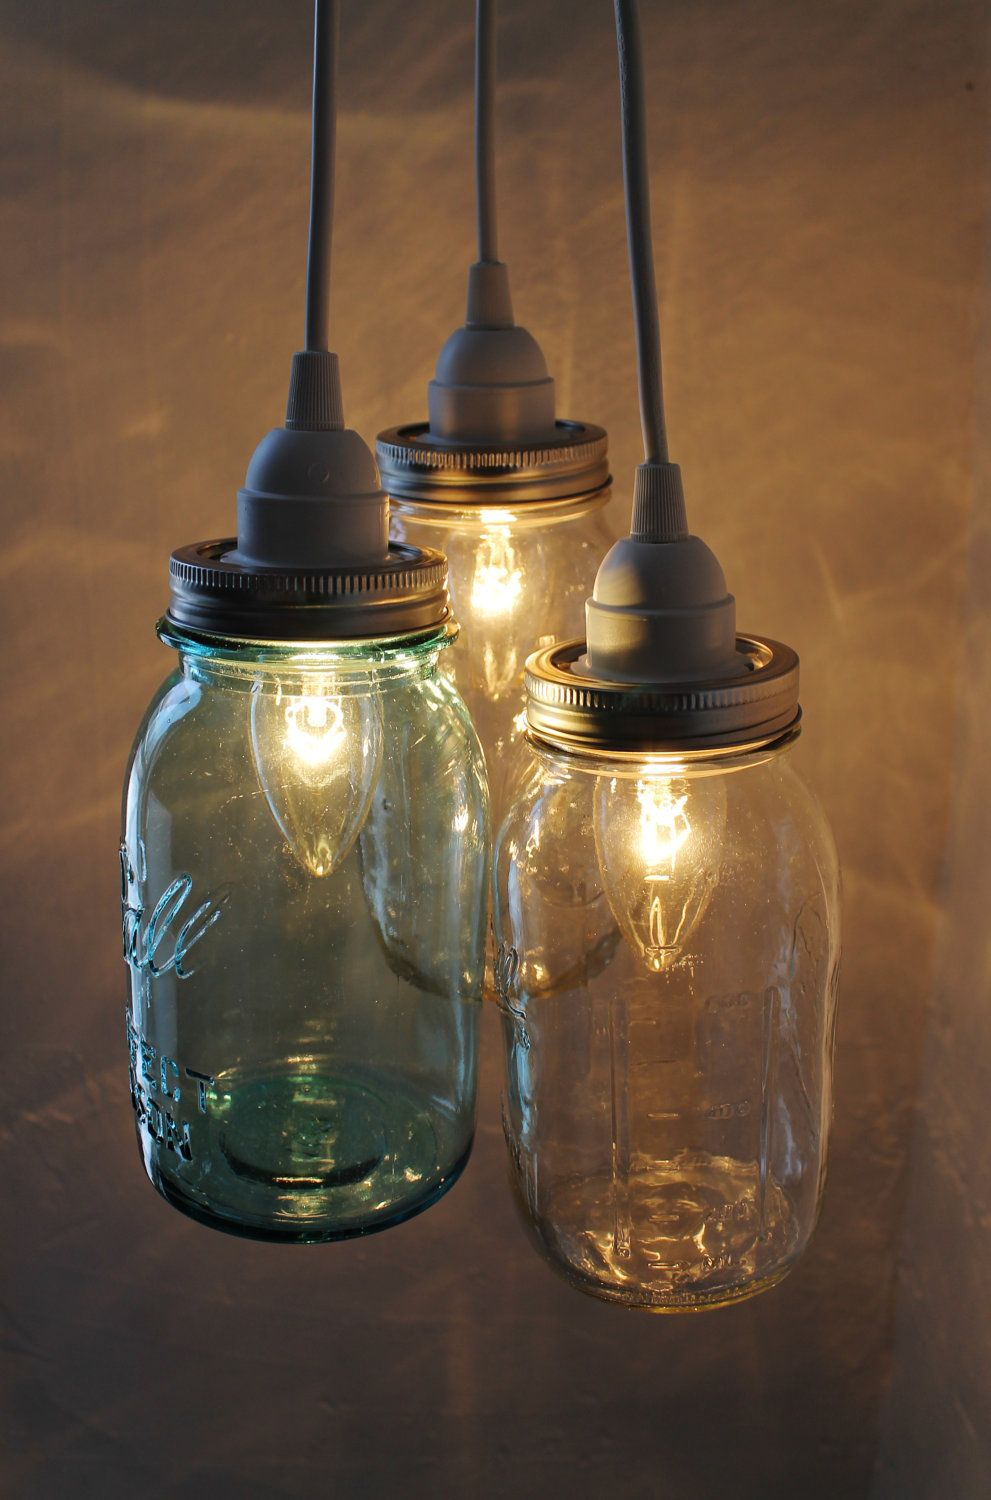 Summer beach house mason jar chandeleir 3 ball mason jar hanging summer beach house mason jar chandelier 3 ball mason jar hanging pendant chandelier cluster light upcycled bootsngus lighting fixture arubaitofo Choice Image